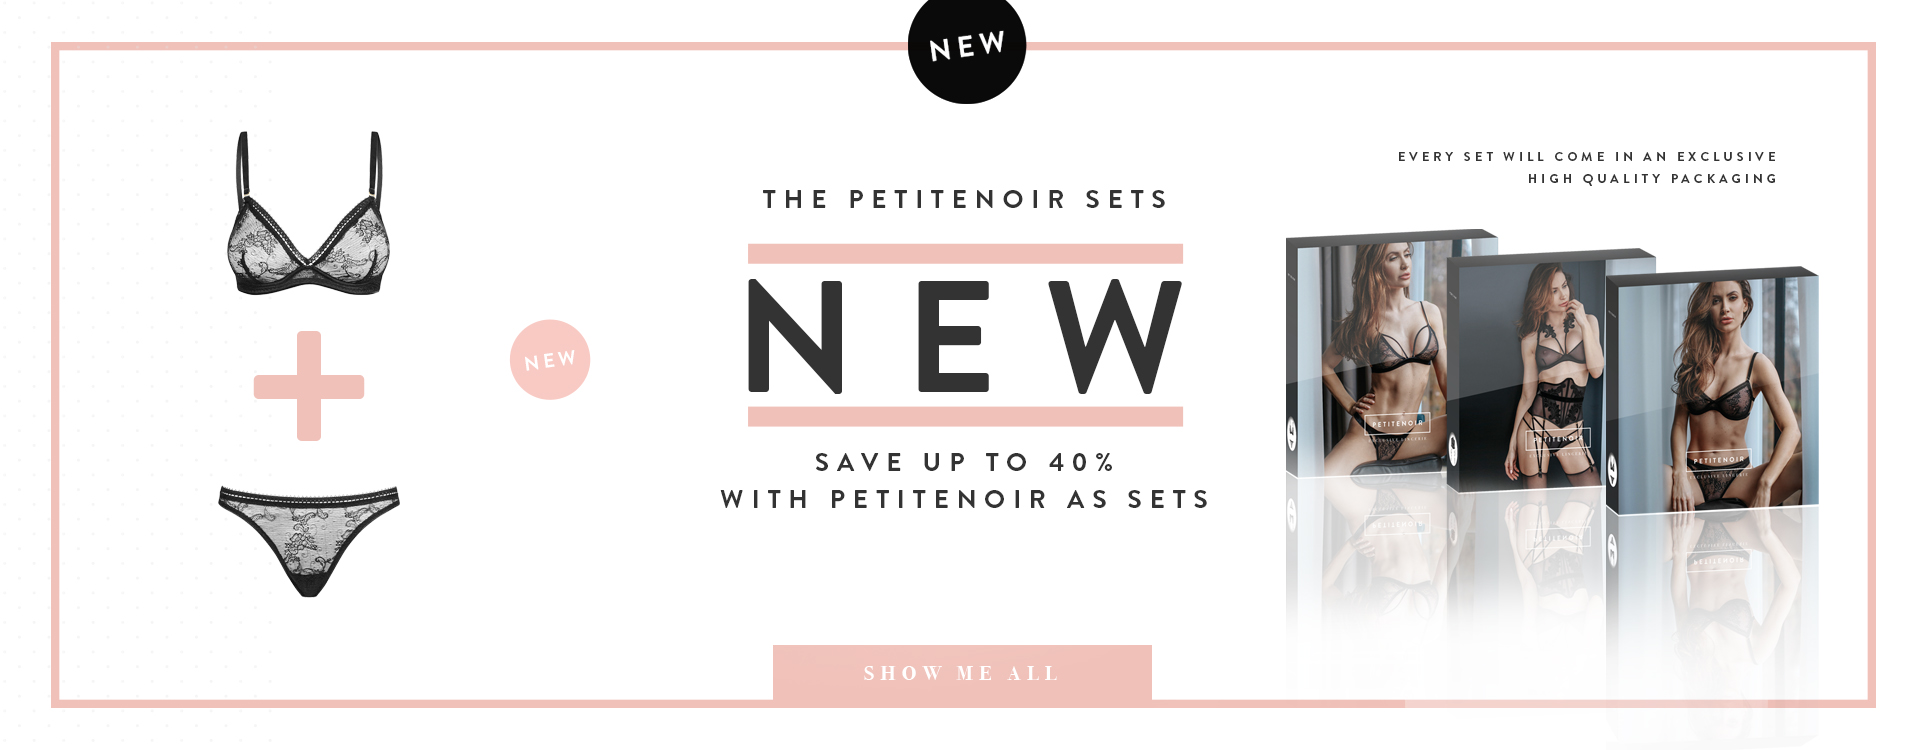 THE PETITENOIR SETS